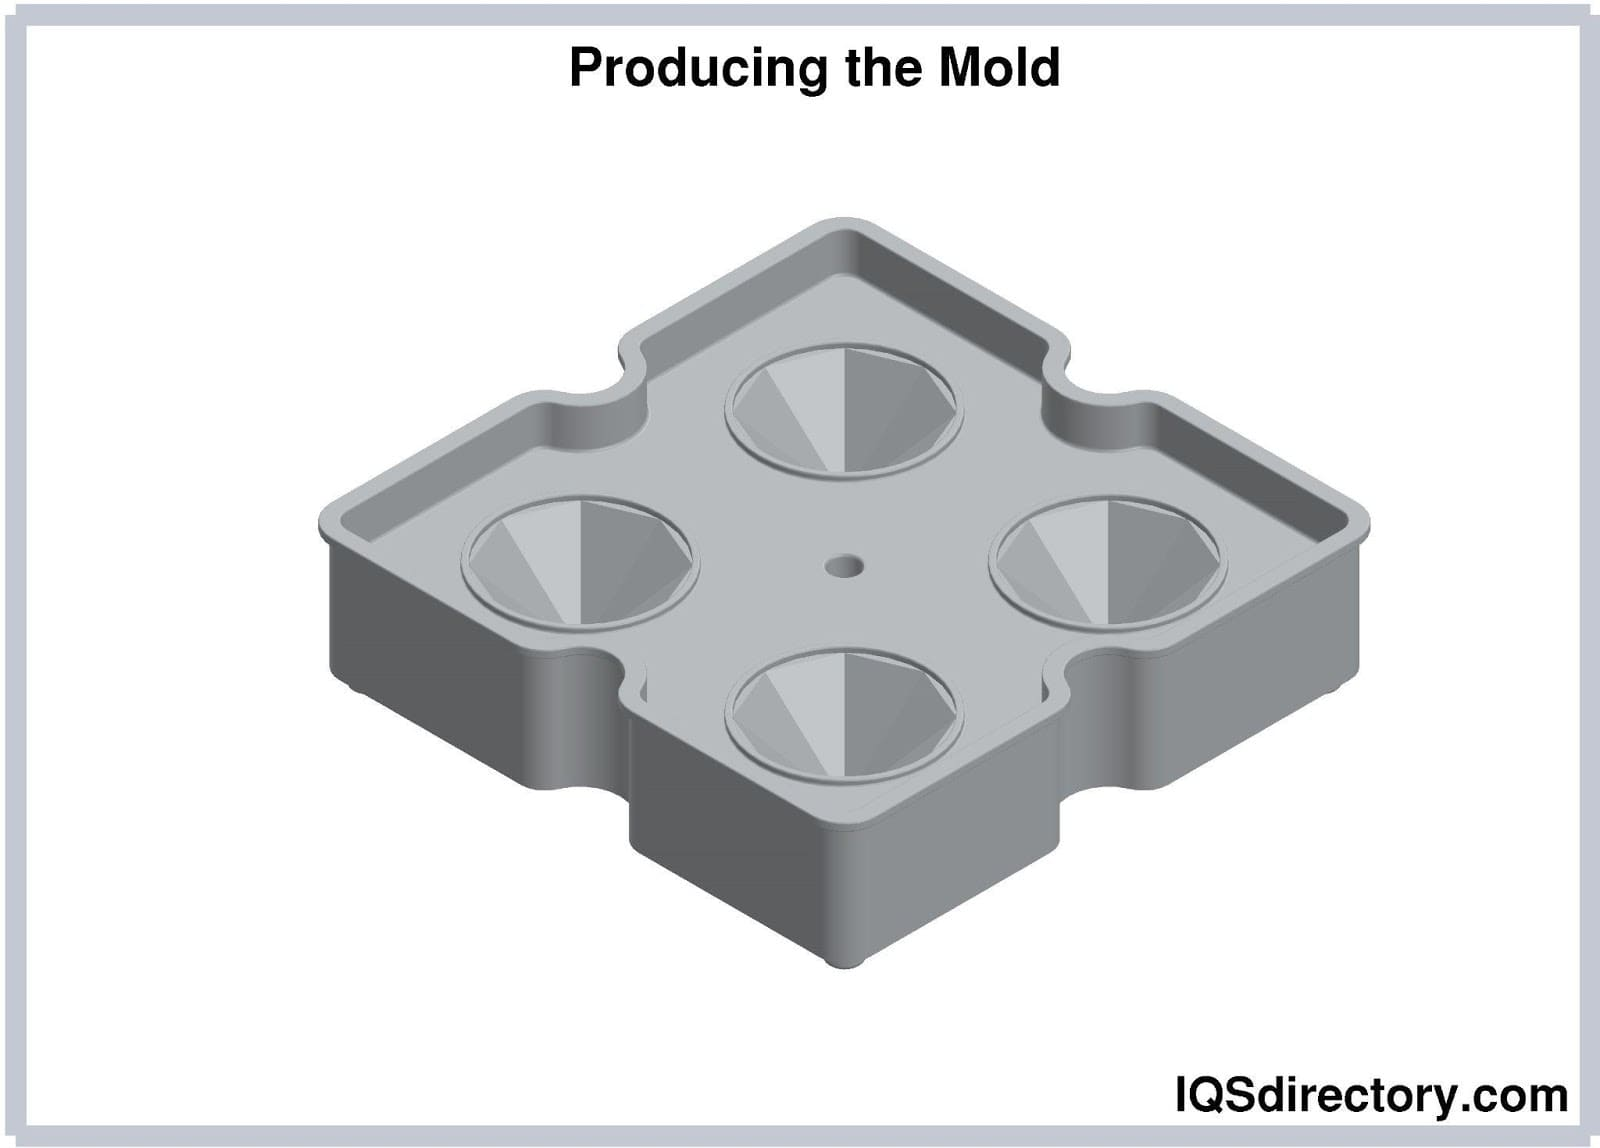 Producing the Mold